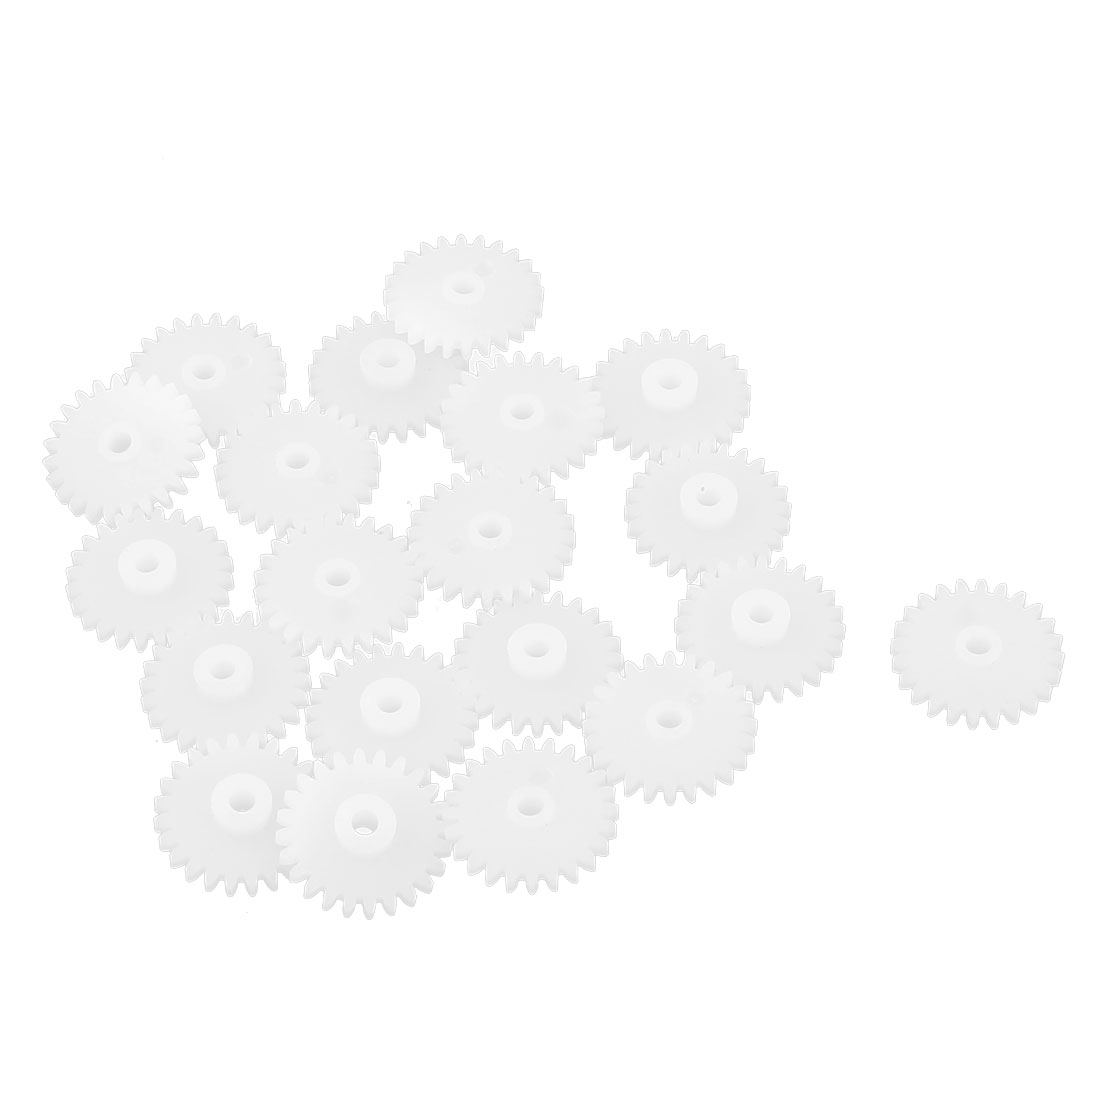 20Pcs 24 Teeth 0.5 Modulus Plastic Single Reduction Motor Gear for RC Airplane